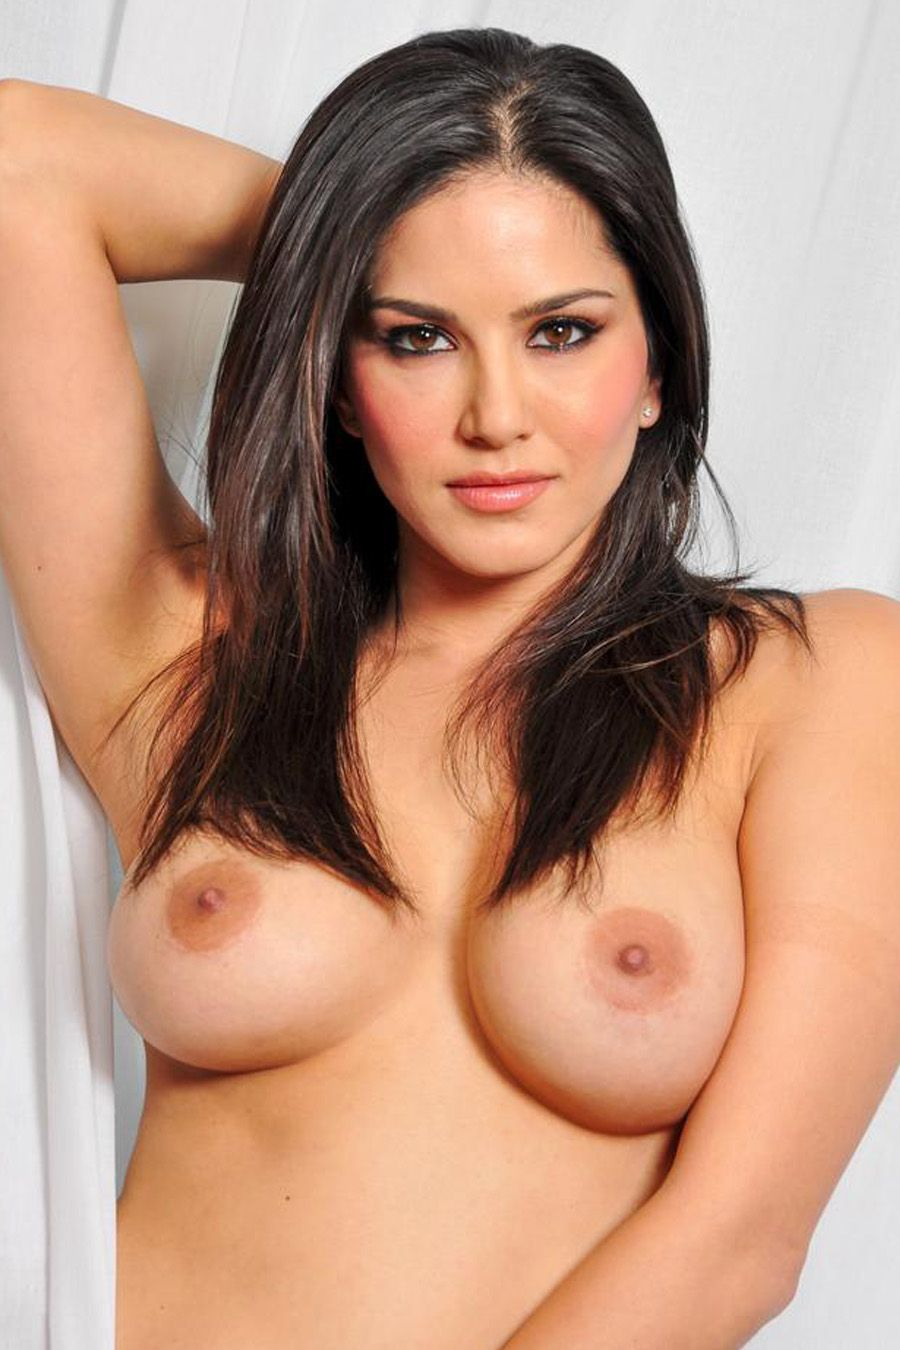 naked-pic-of-sunny-leone-women-x-s-sexual-dysfunction